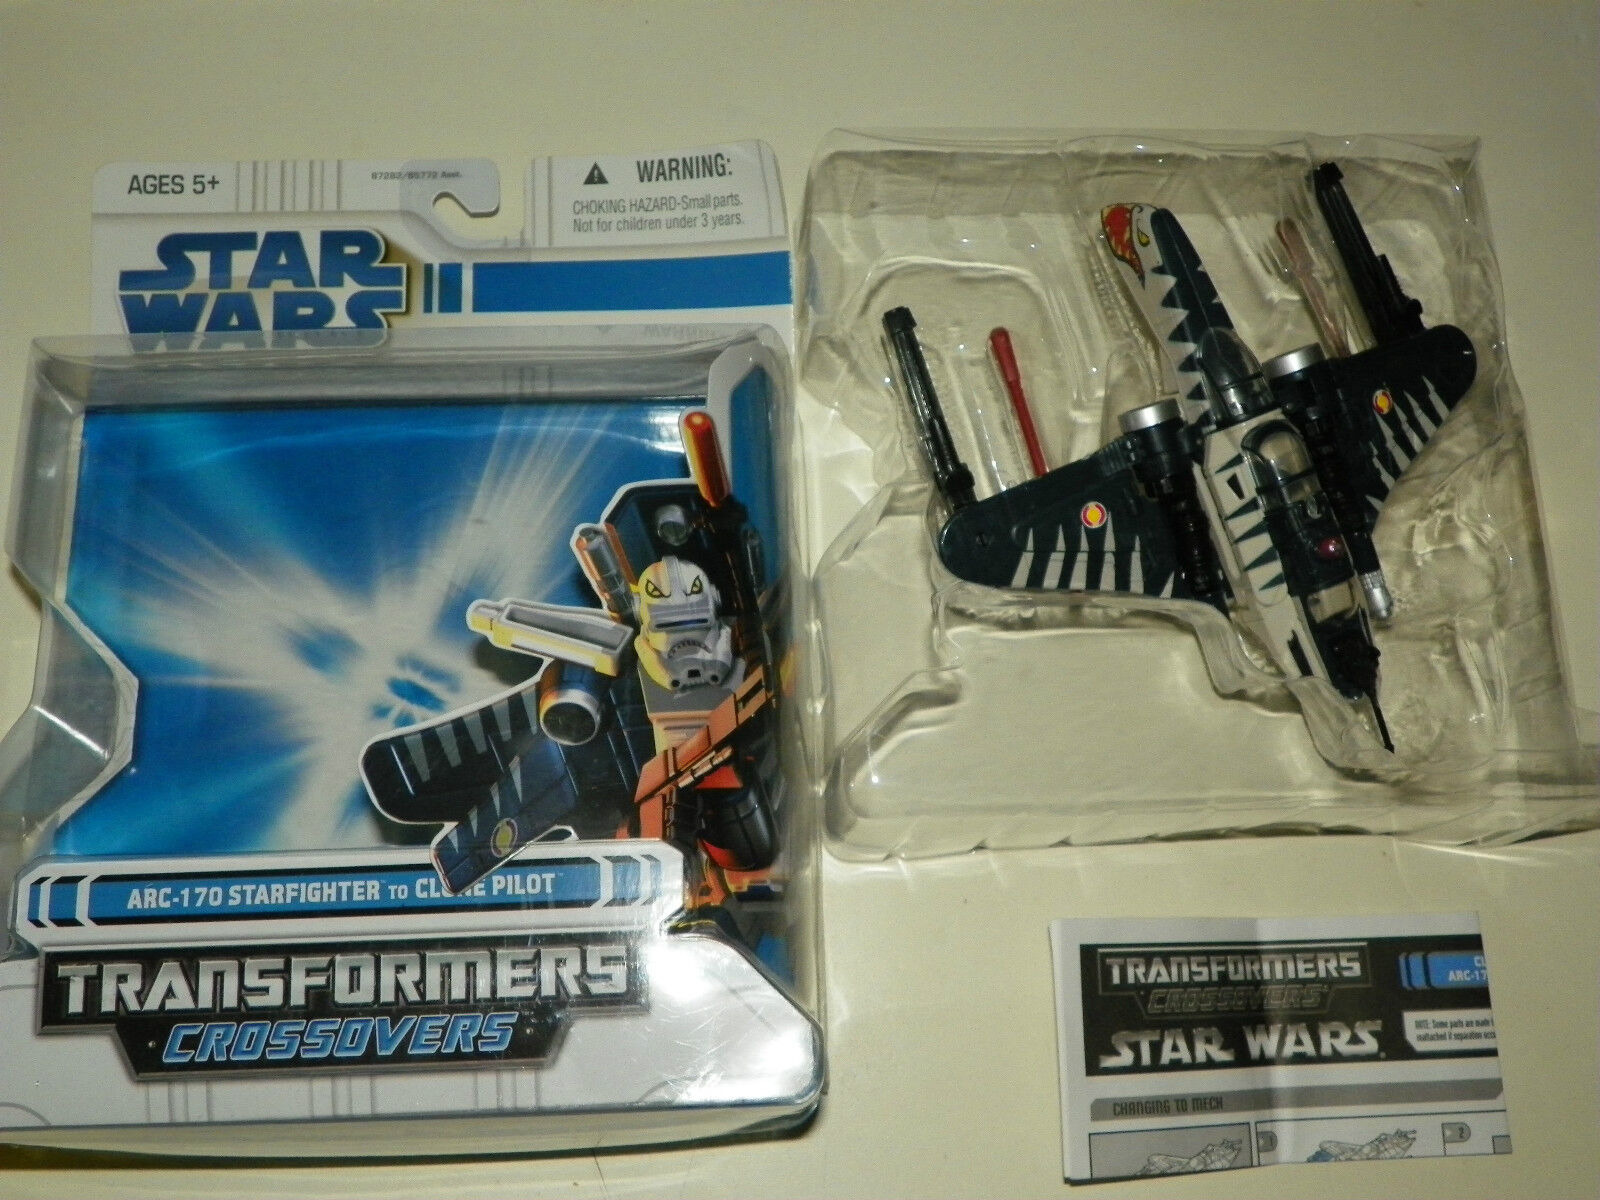 Star Wars Transformers ARC 170 Starfighter to Clone Pilot